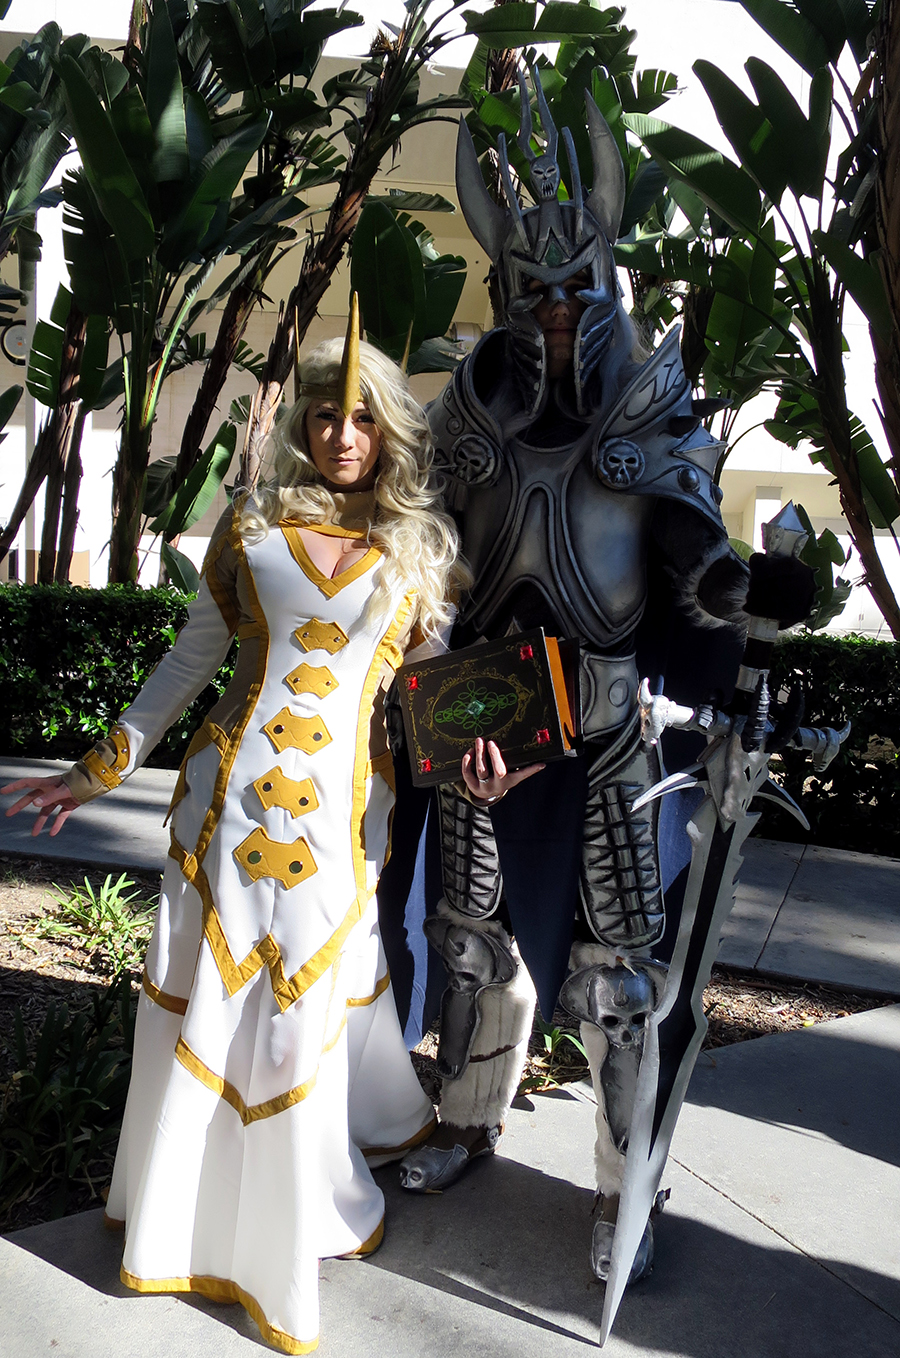 Cosplay Pictures from BlizzCon 2015 Cosplay Galleries